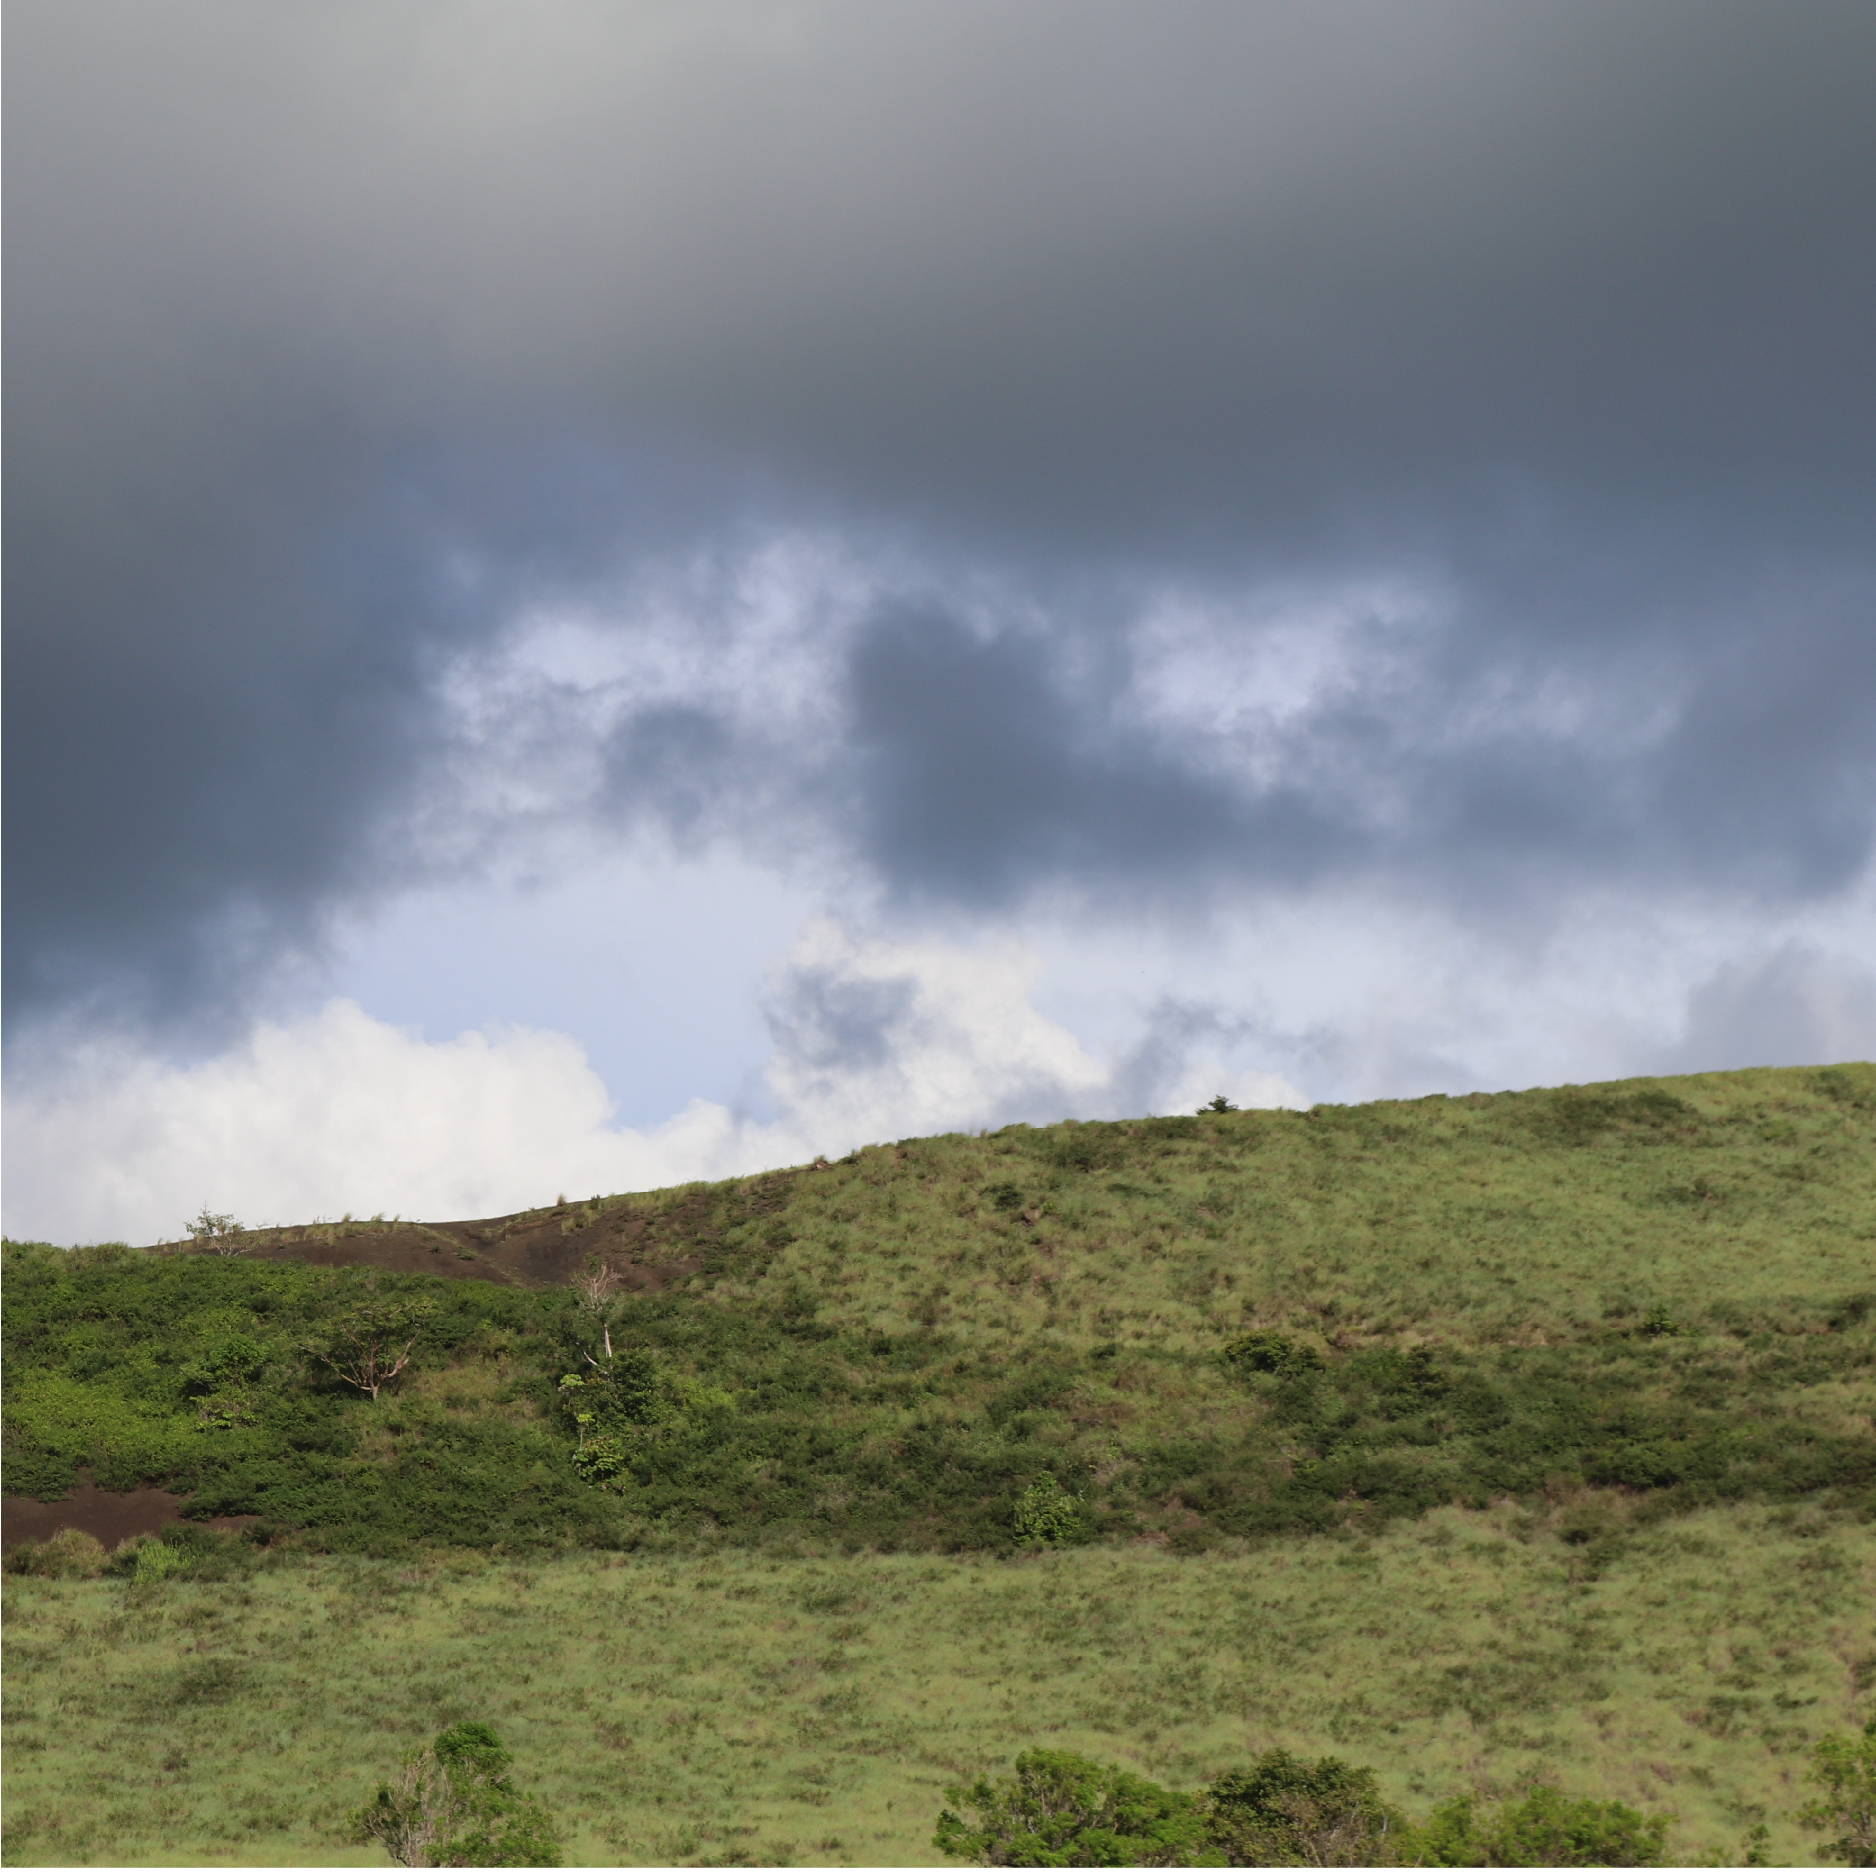 A large green hill in Nicaragua contrasts a dark stormy sky.